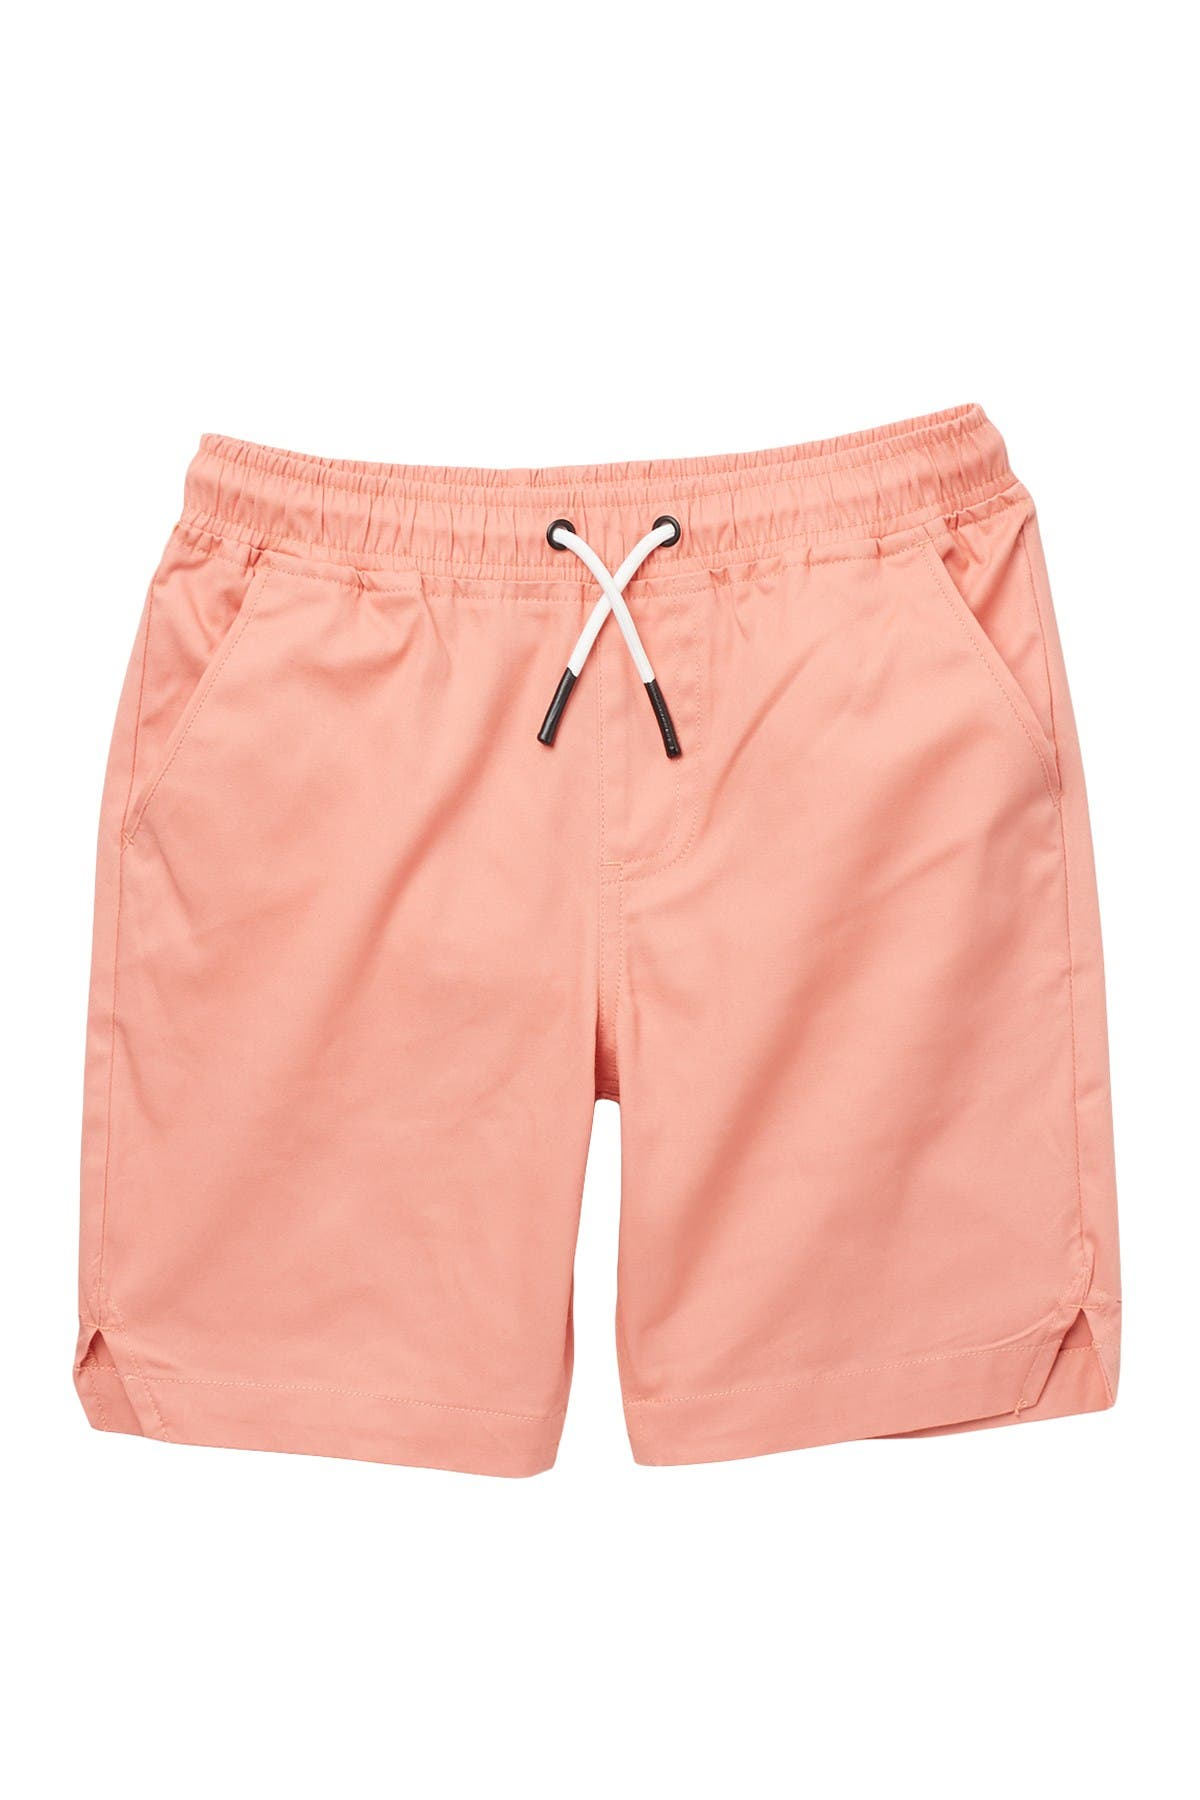 Image of Sovereign Code Gateway Solid Shorts